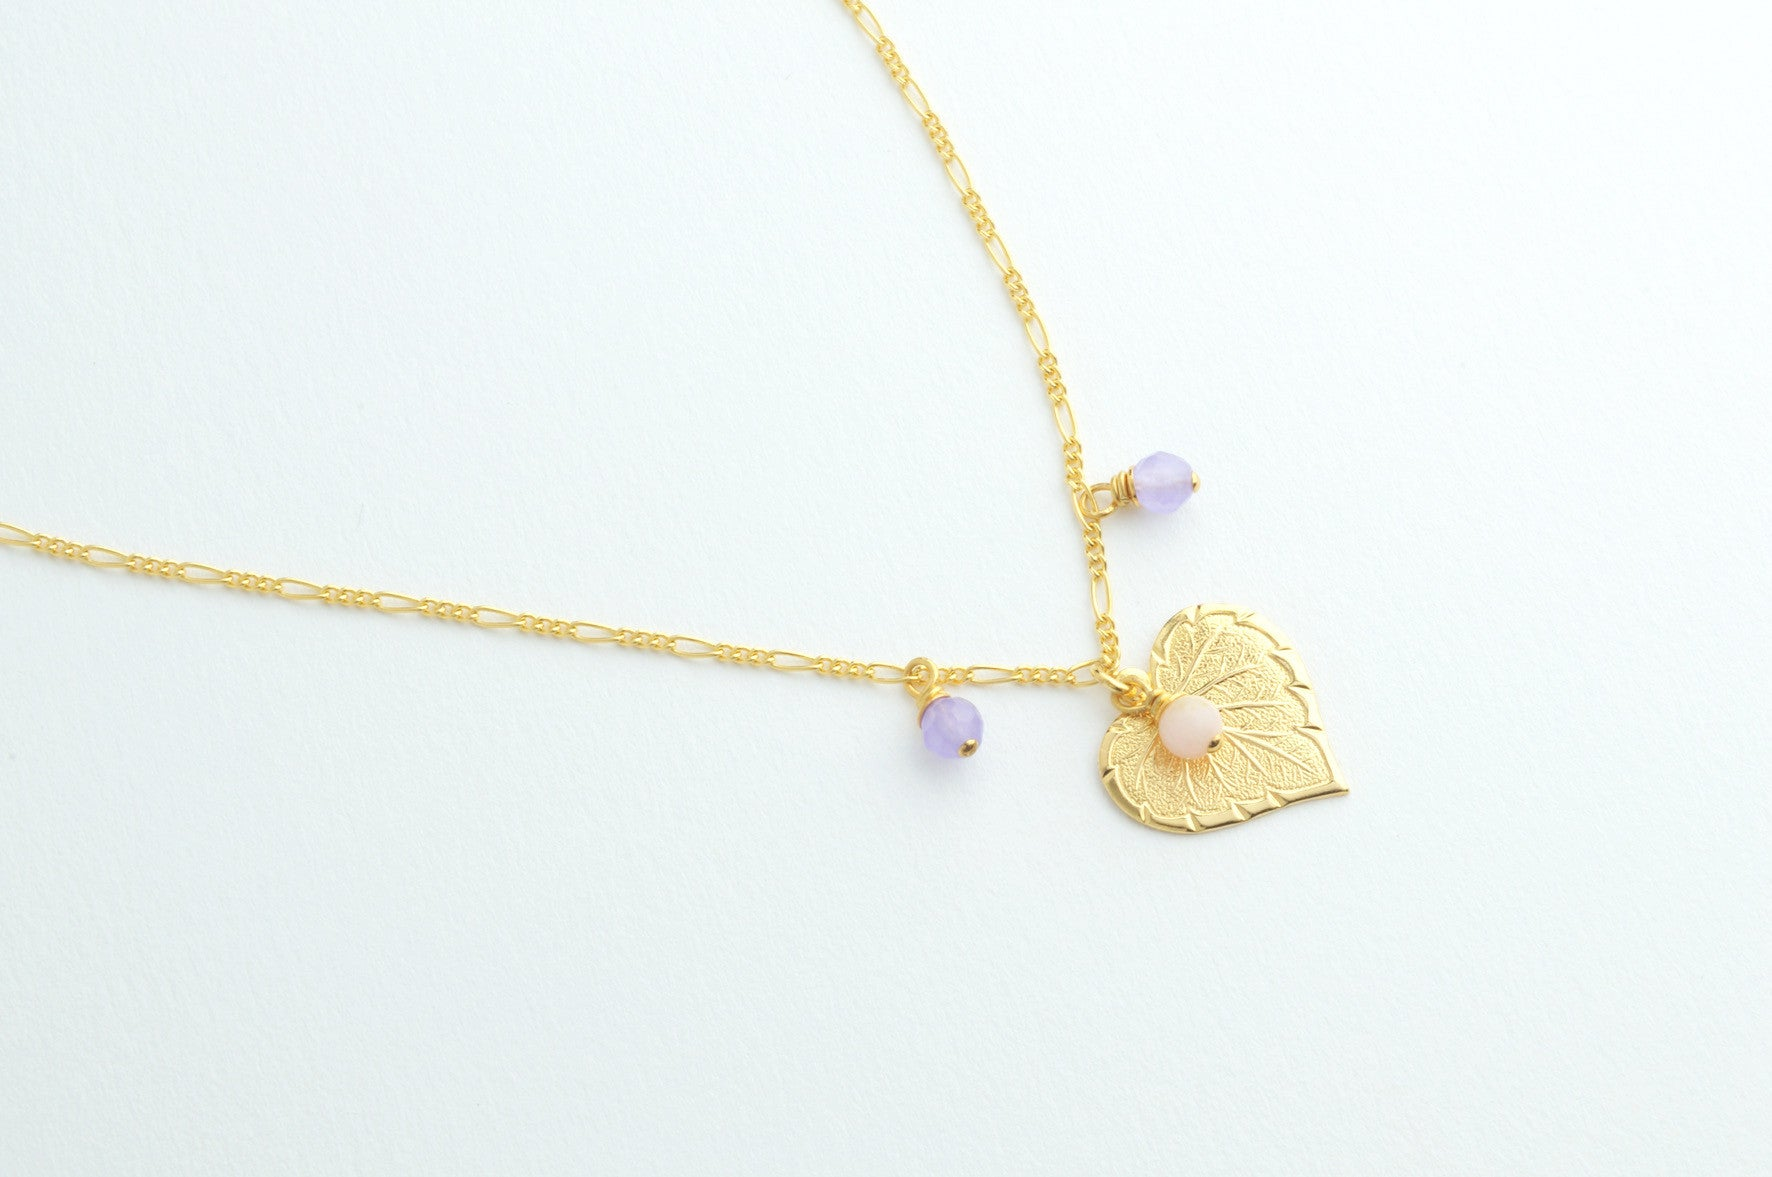 Kette HEARTLEAF small vergoldet